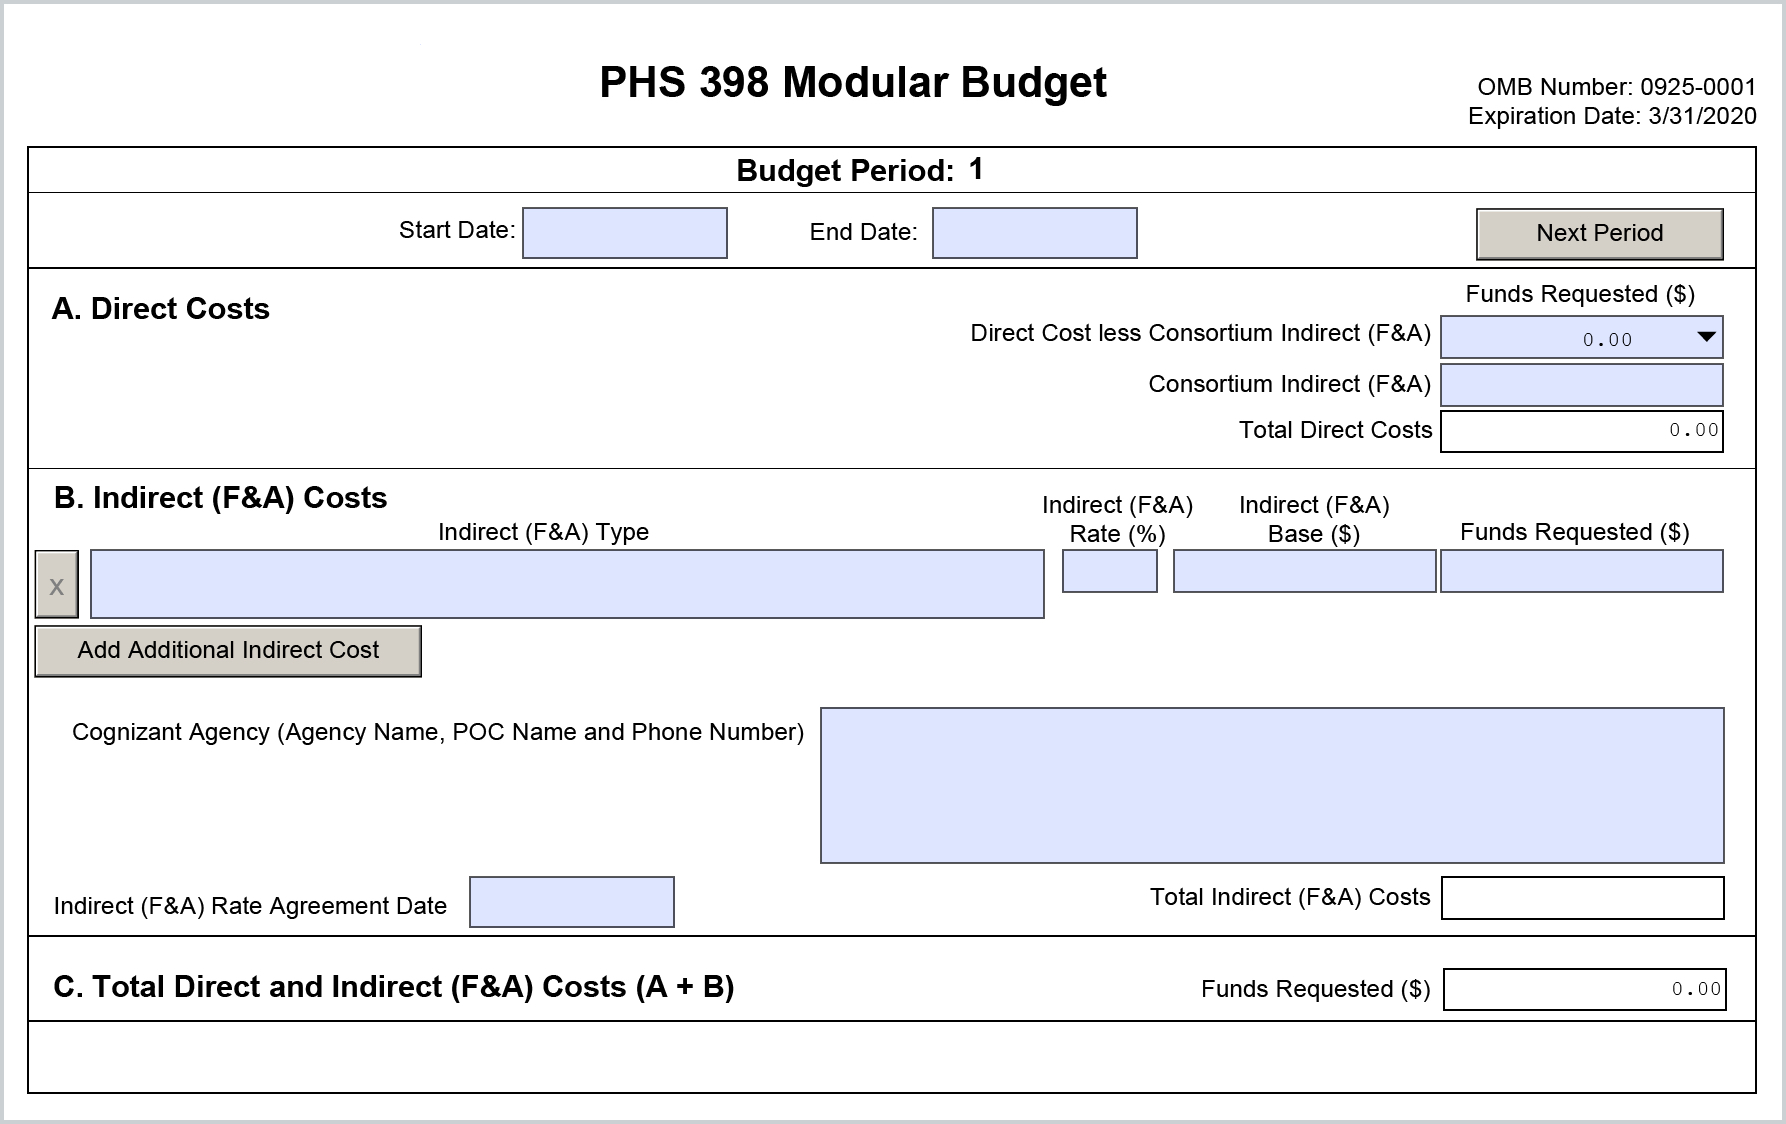 S2s phs398modularbudget form instructions kuali research please note modular budget maxwellsz